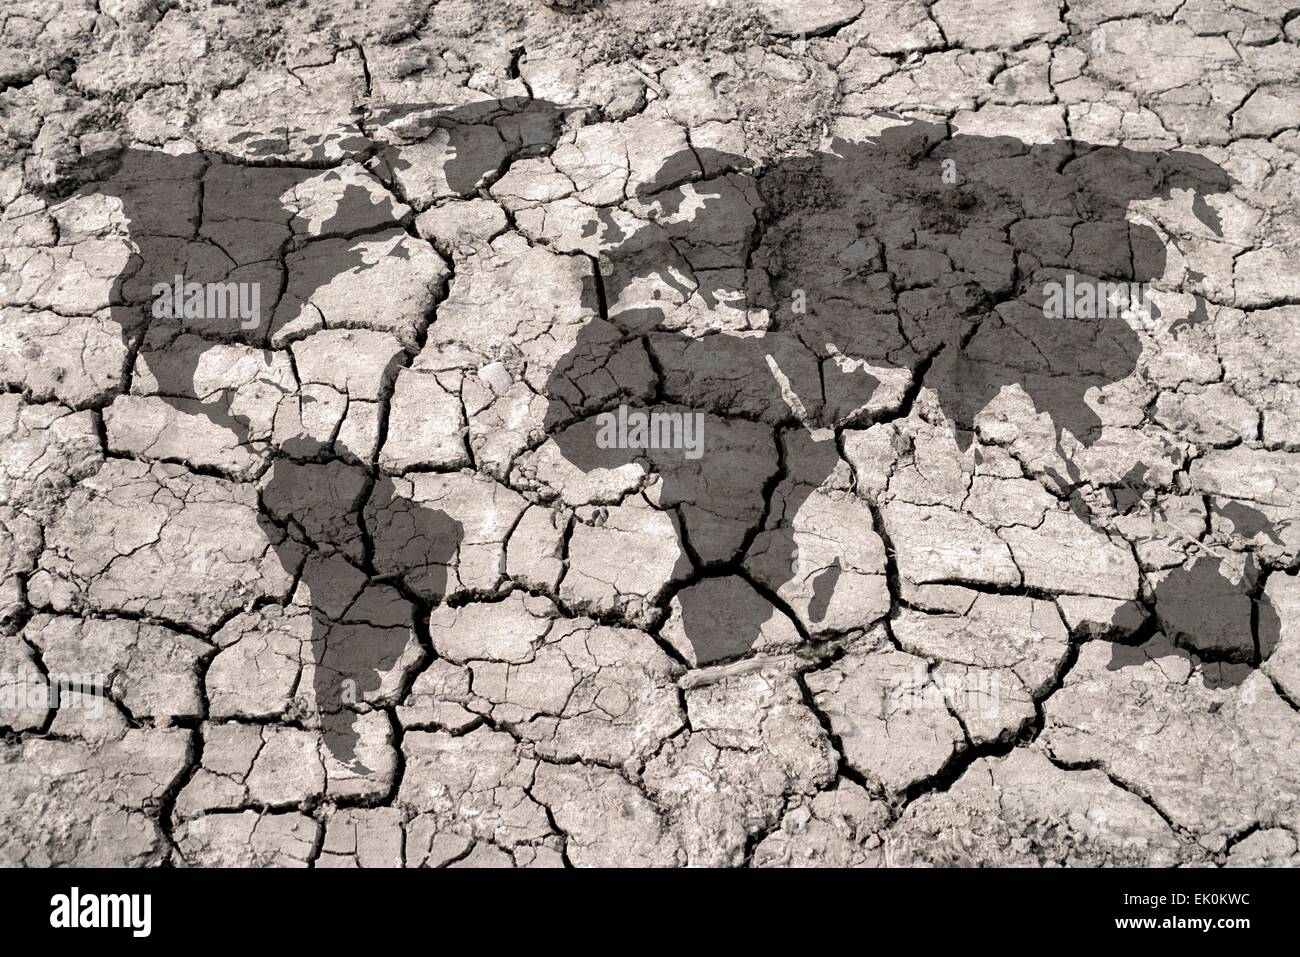 artwork, digitally generated, illustration, geography, geographical, crack, cracks, cracked, earth, soil, dry, drought, - Stock Image